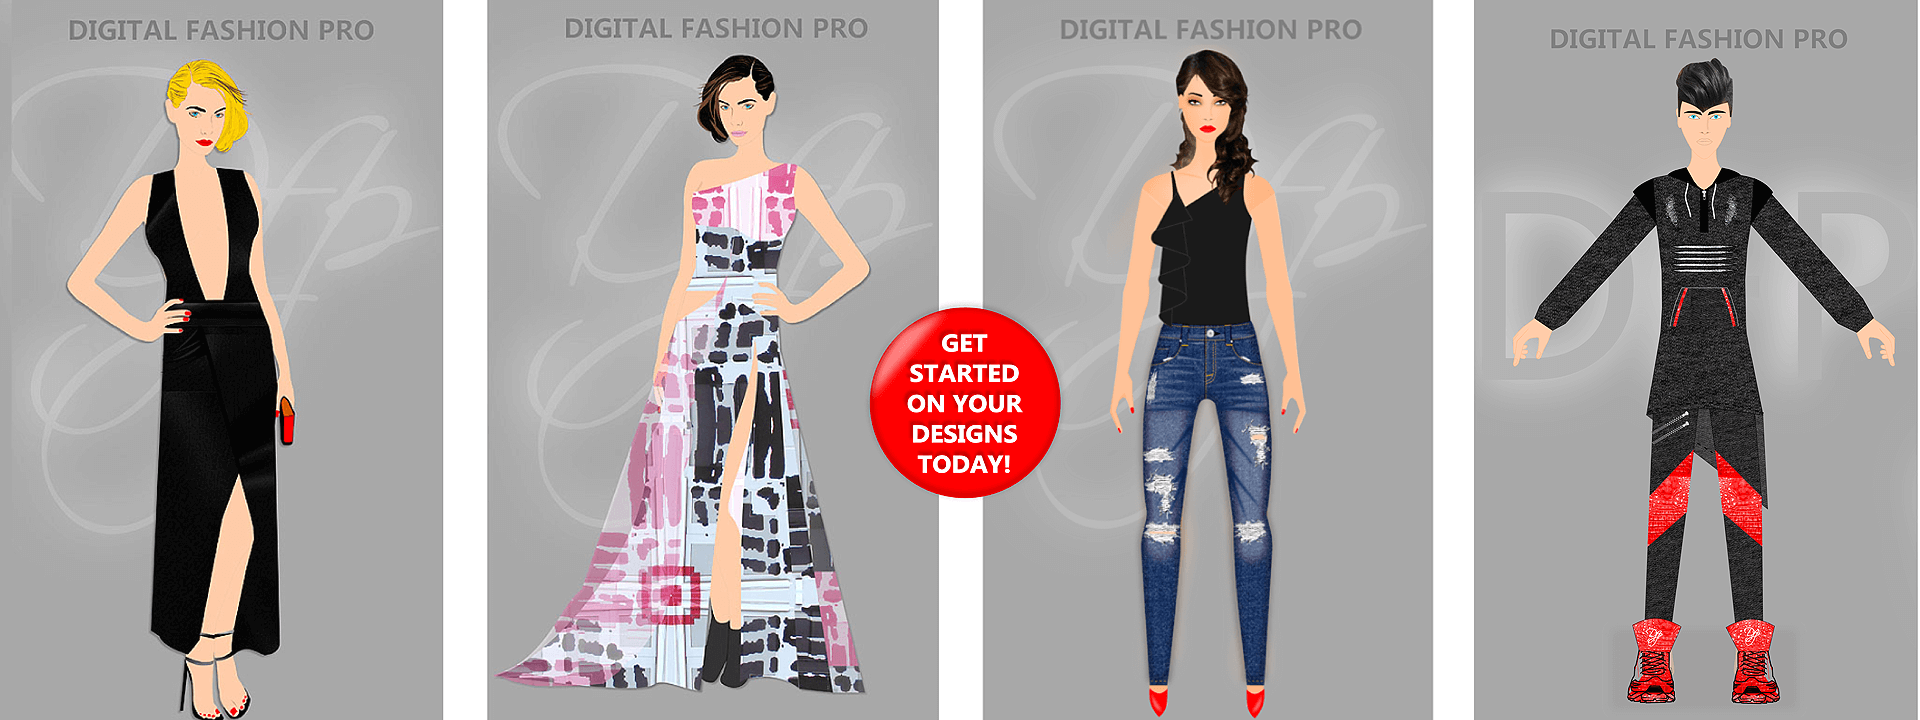 Clothing Design Software - Design Your Own Clothing - Digital Fashion Pro